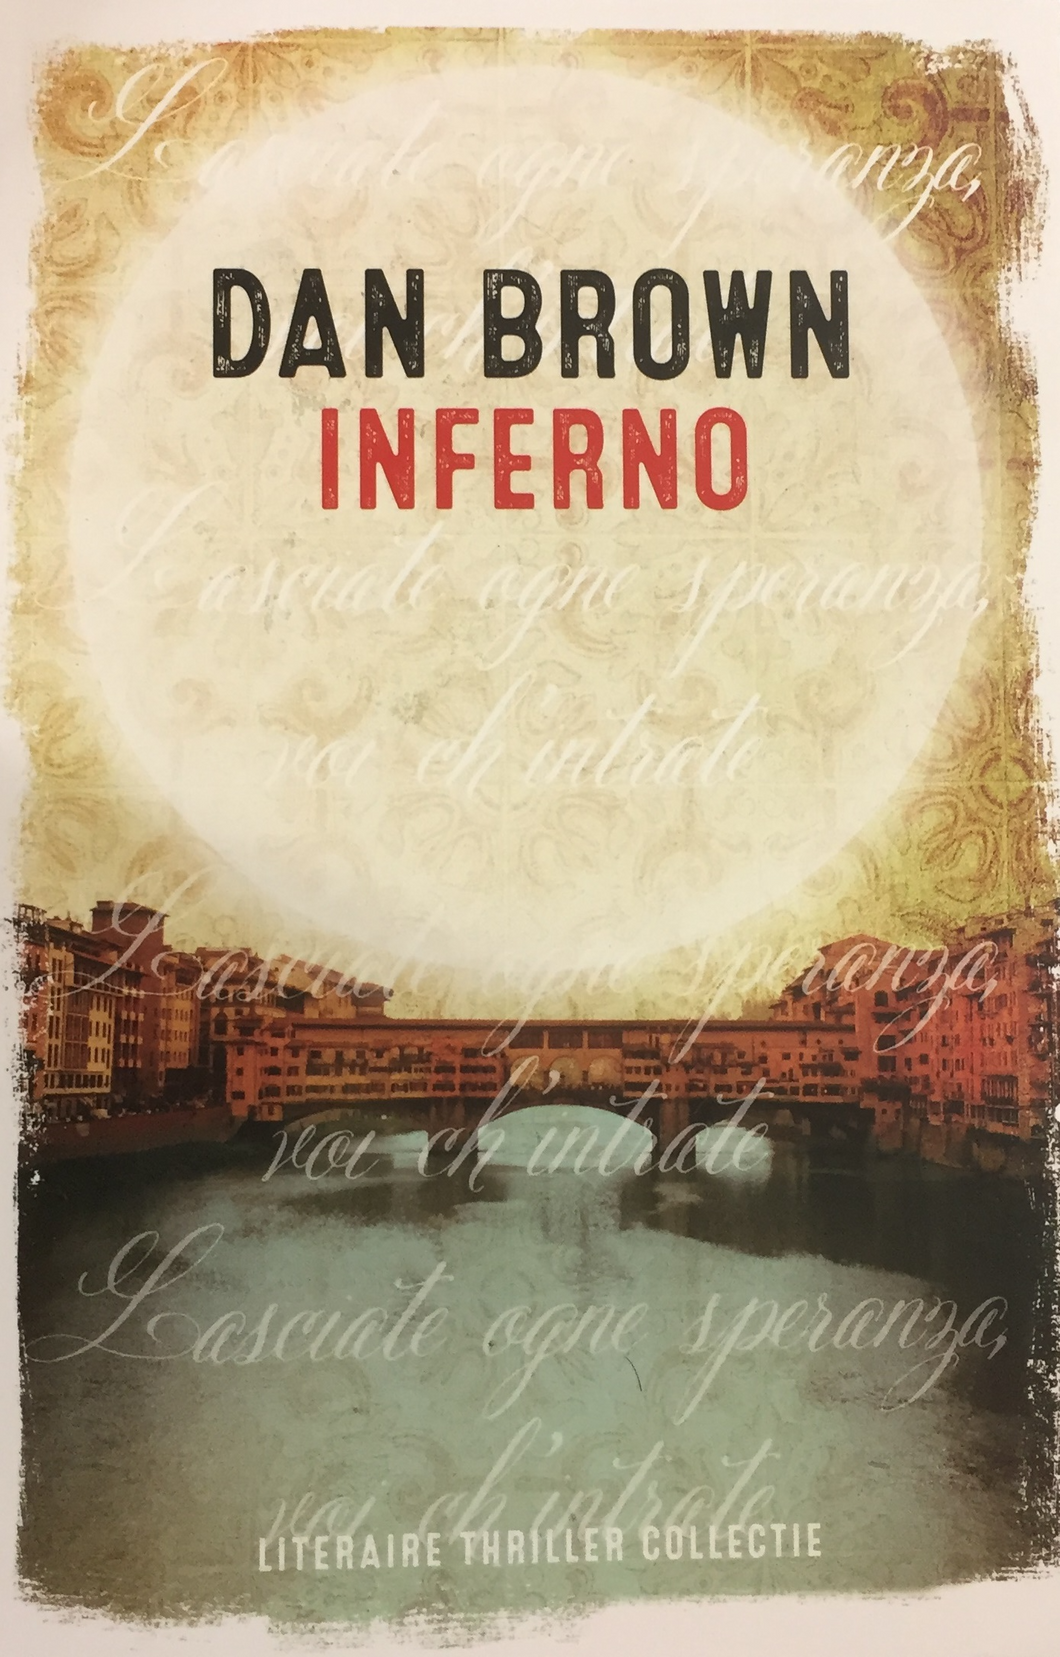 Inferno - Dan Brown - Boekenmarkt de Markies